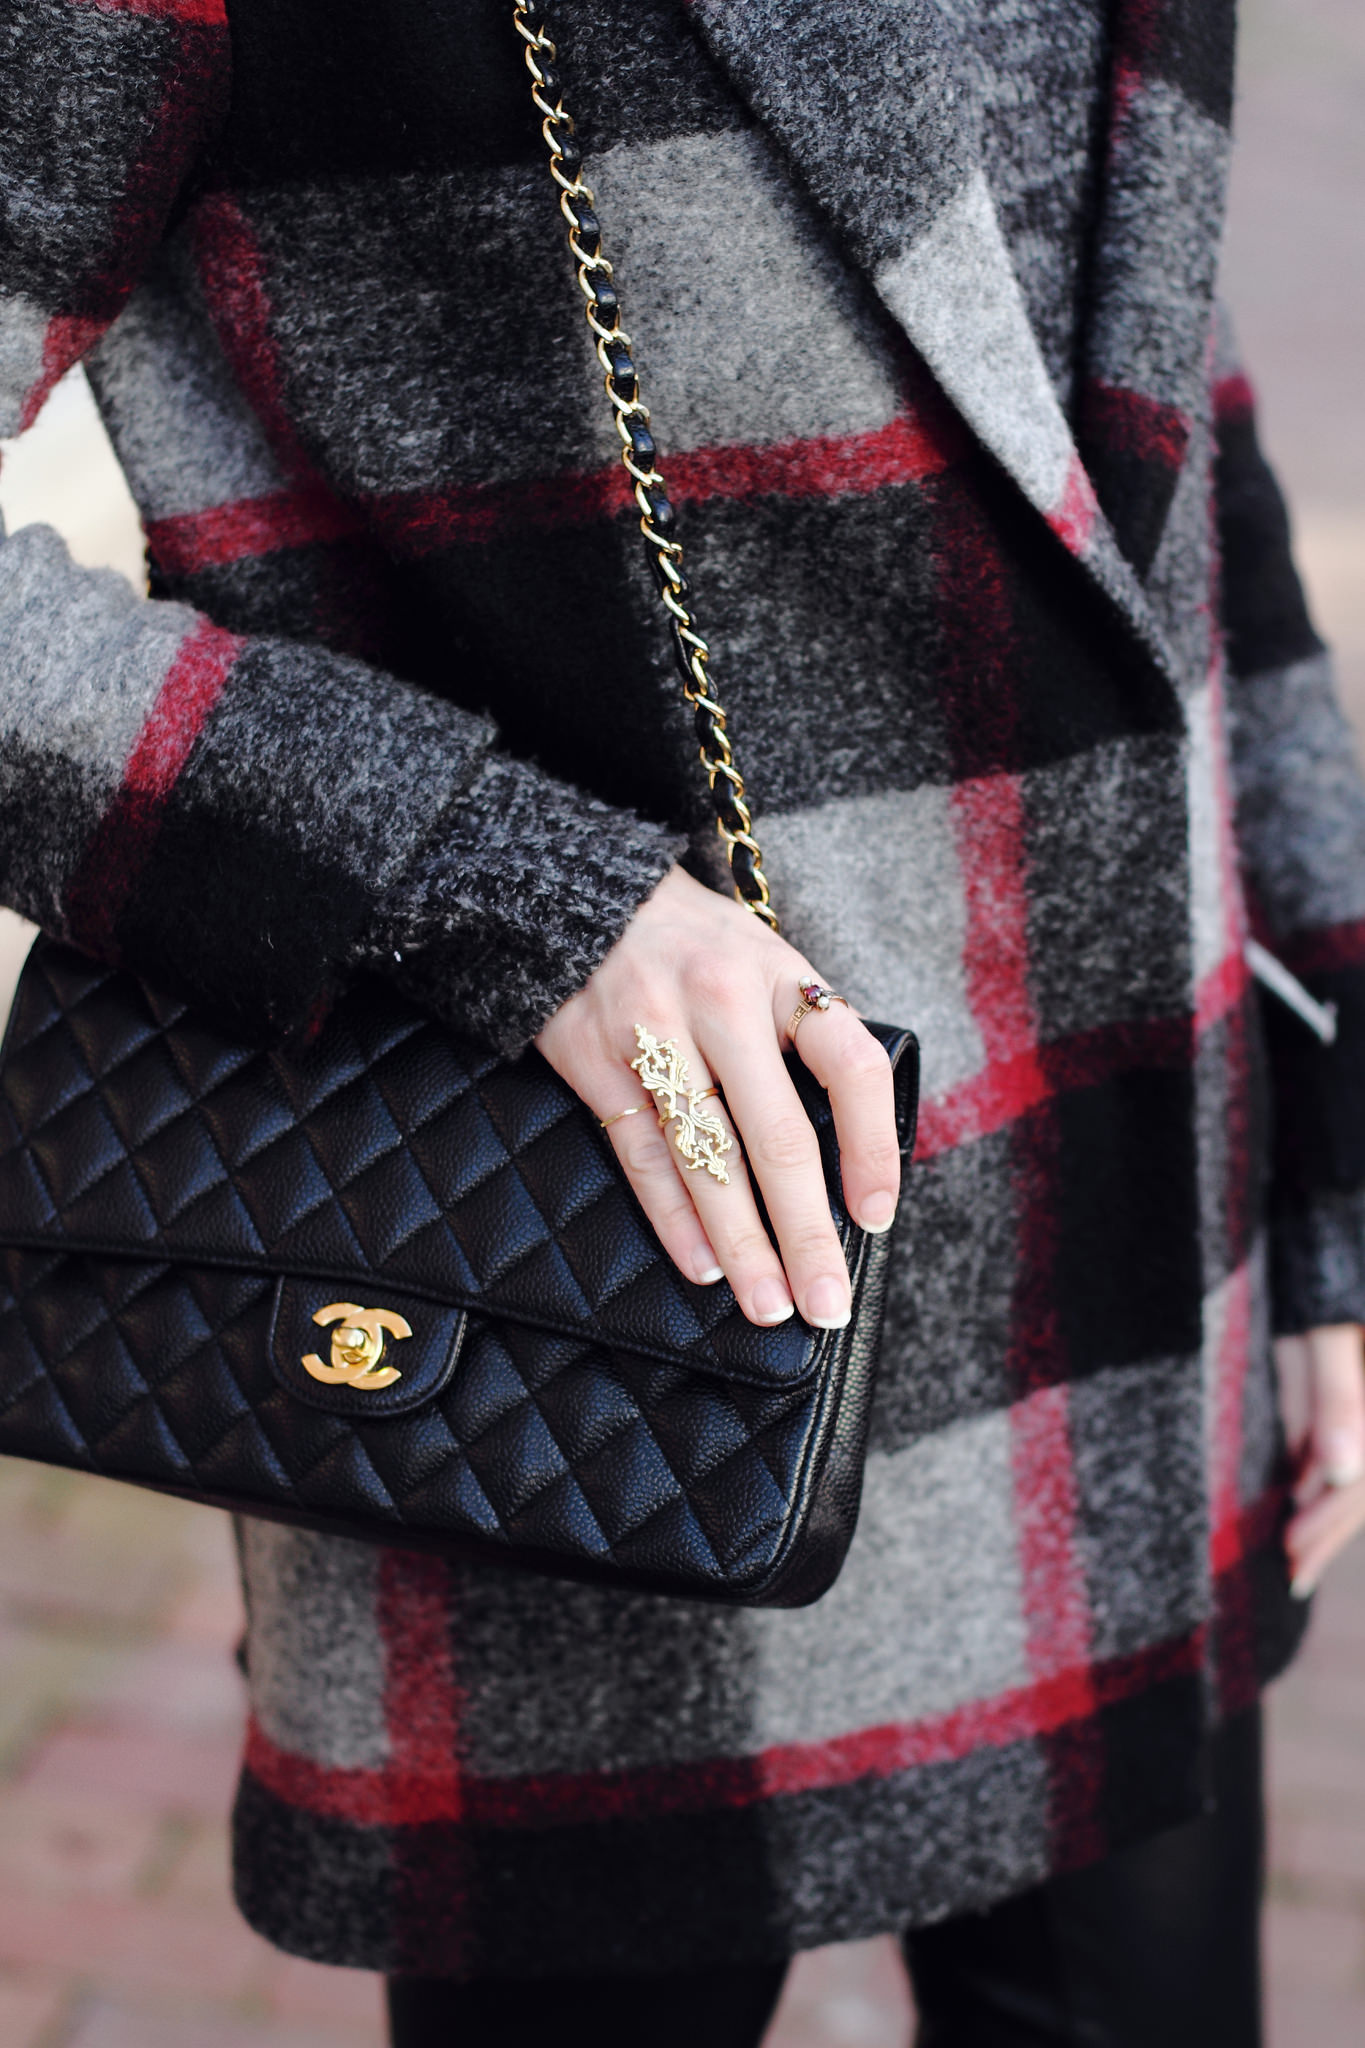 Chanel bag